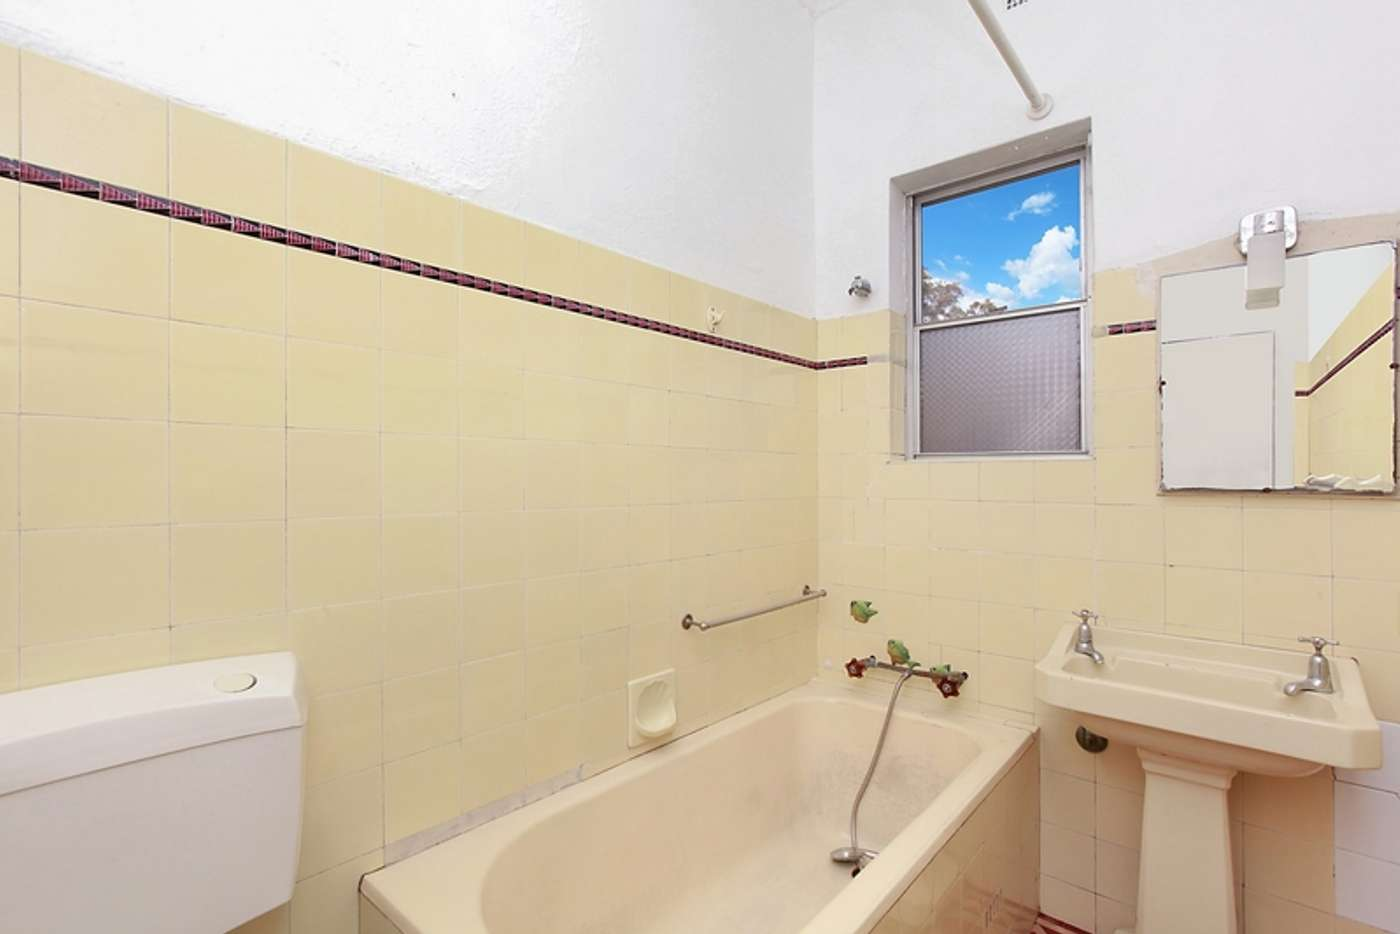 Sixth view of Homely house listing, 143 Burwood Road, Croydon Park NSW 2133